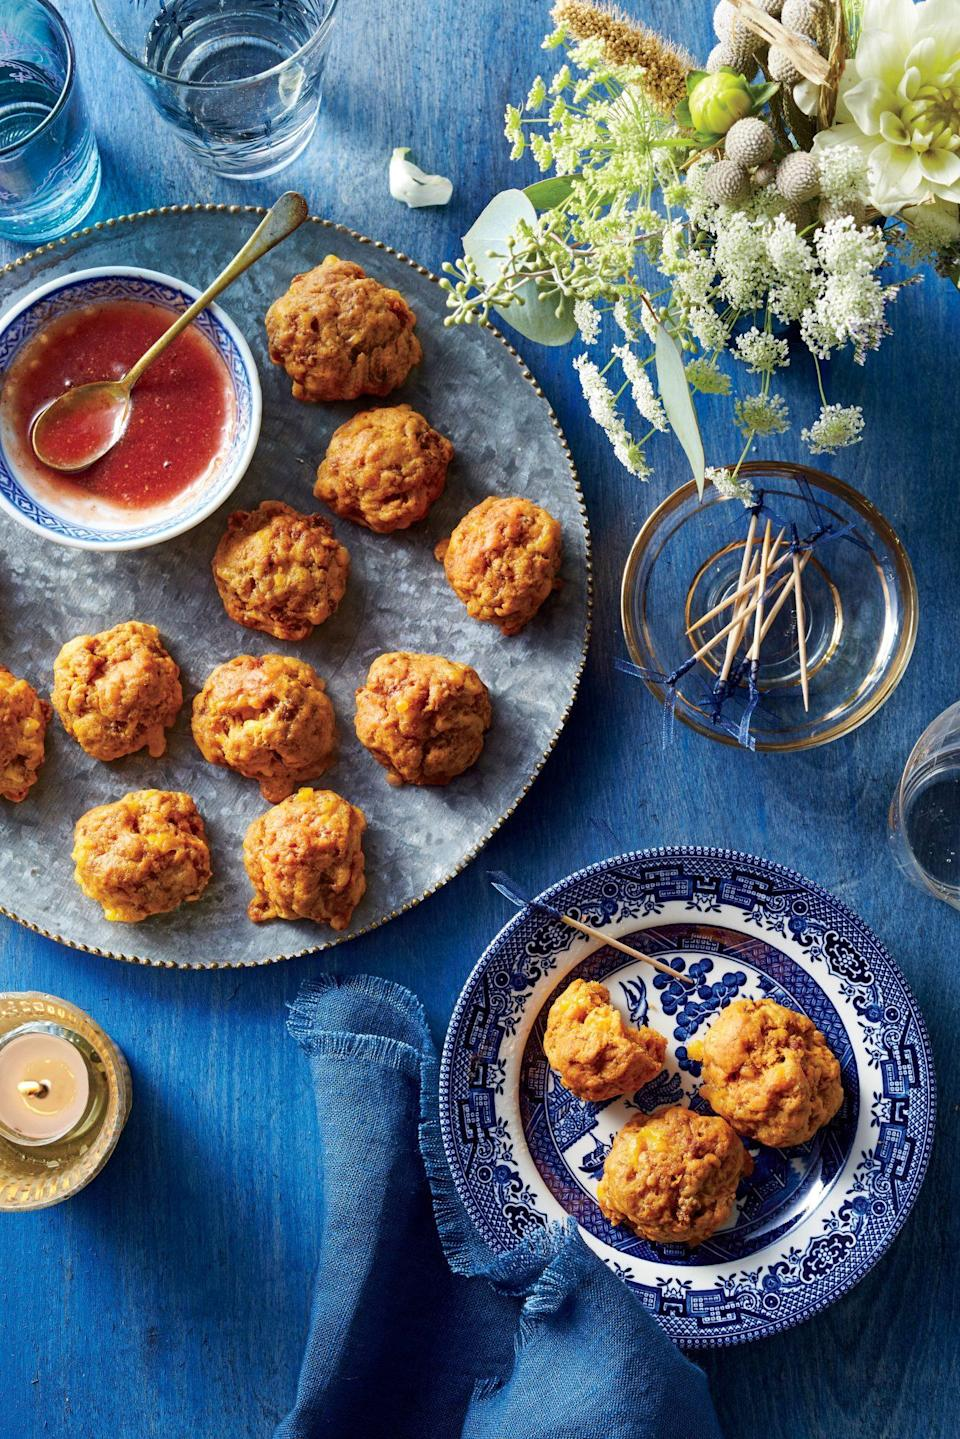 """<p><strong>Recipe: <a href=""""https://www.southernliving.com/recipes/sweet-potato-chorizo-sausage-bites"""" rel=""""nofollow noopener"""" target=""""_blank"""" data-ylk=""""slk:Sweet Potato and Chorizo Sausage Bites"""" class=""""link rapid-noclick-resp"""">Sweet Potato and Chorizo Sausage Bites</a></strong></p> <p>This recipe uses chorizo to give each bite a little kick and sweet potatoes add heartiness as well as another layer of flavor.</p>"""